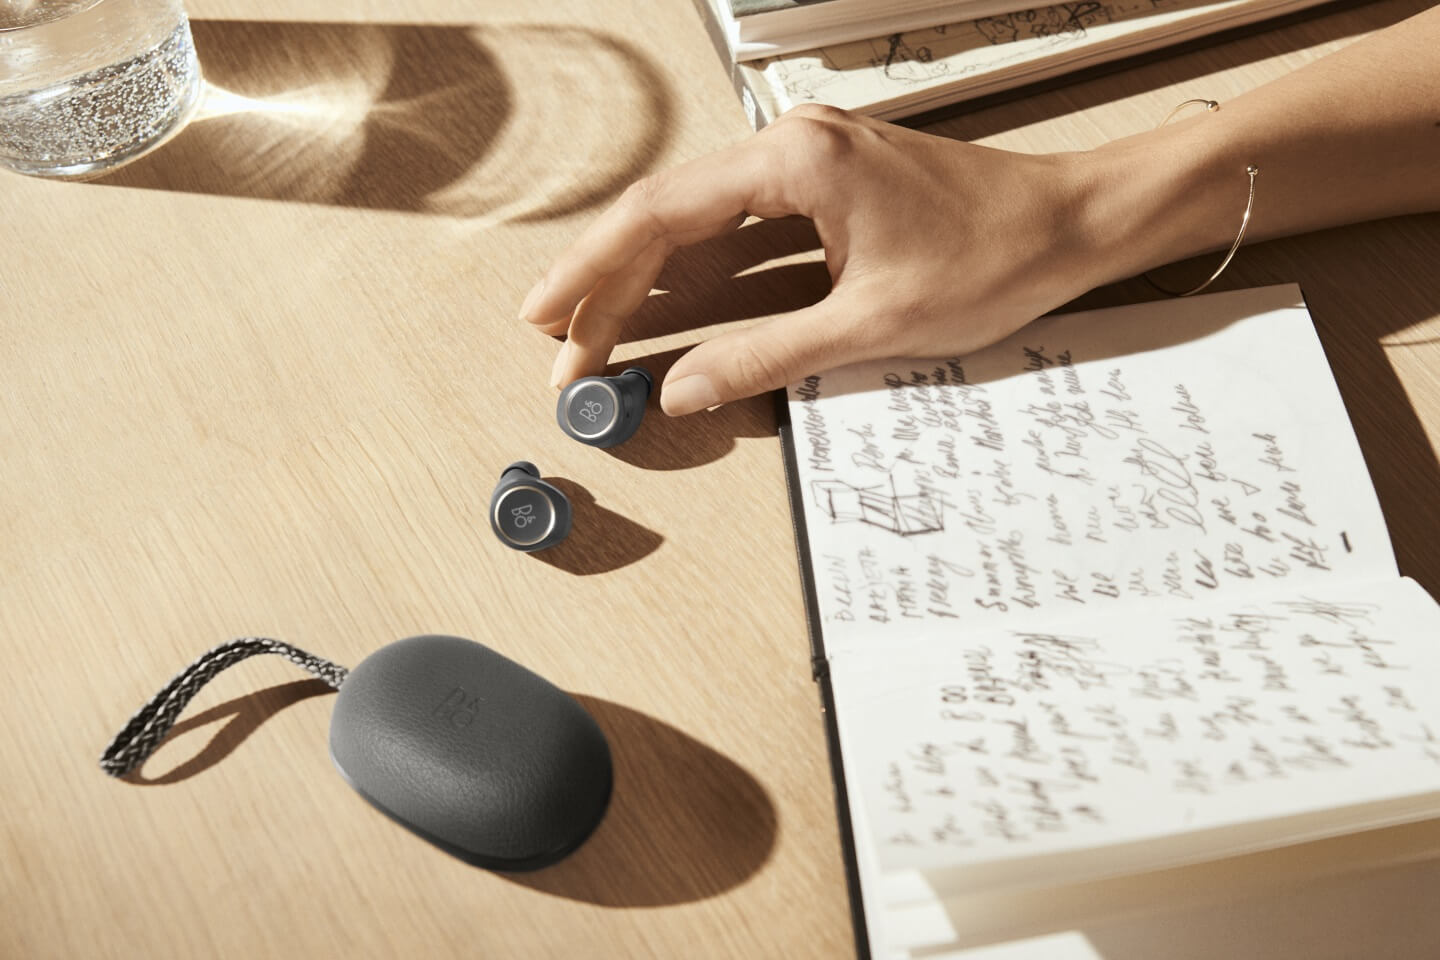 BeoPlay E8 - with transparancy mode